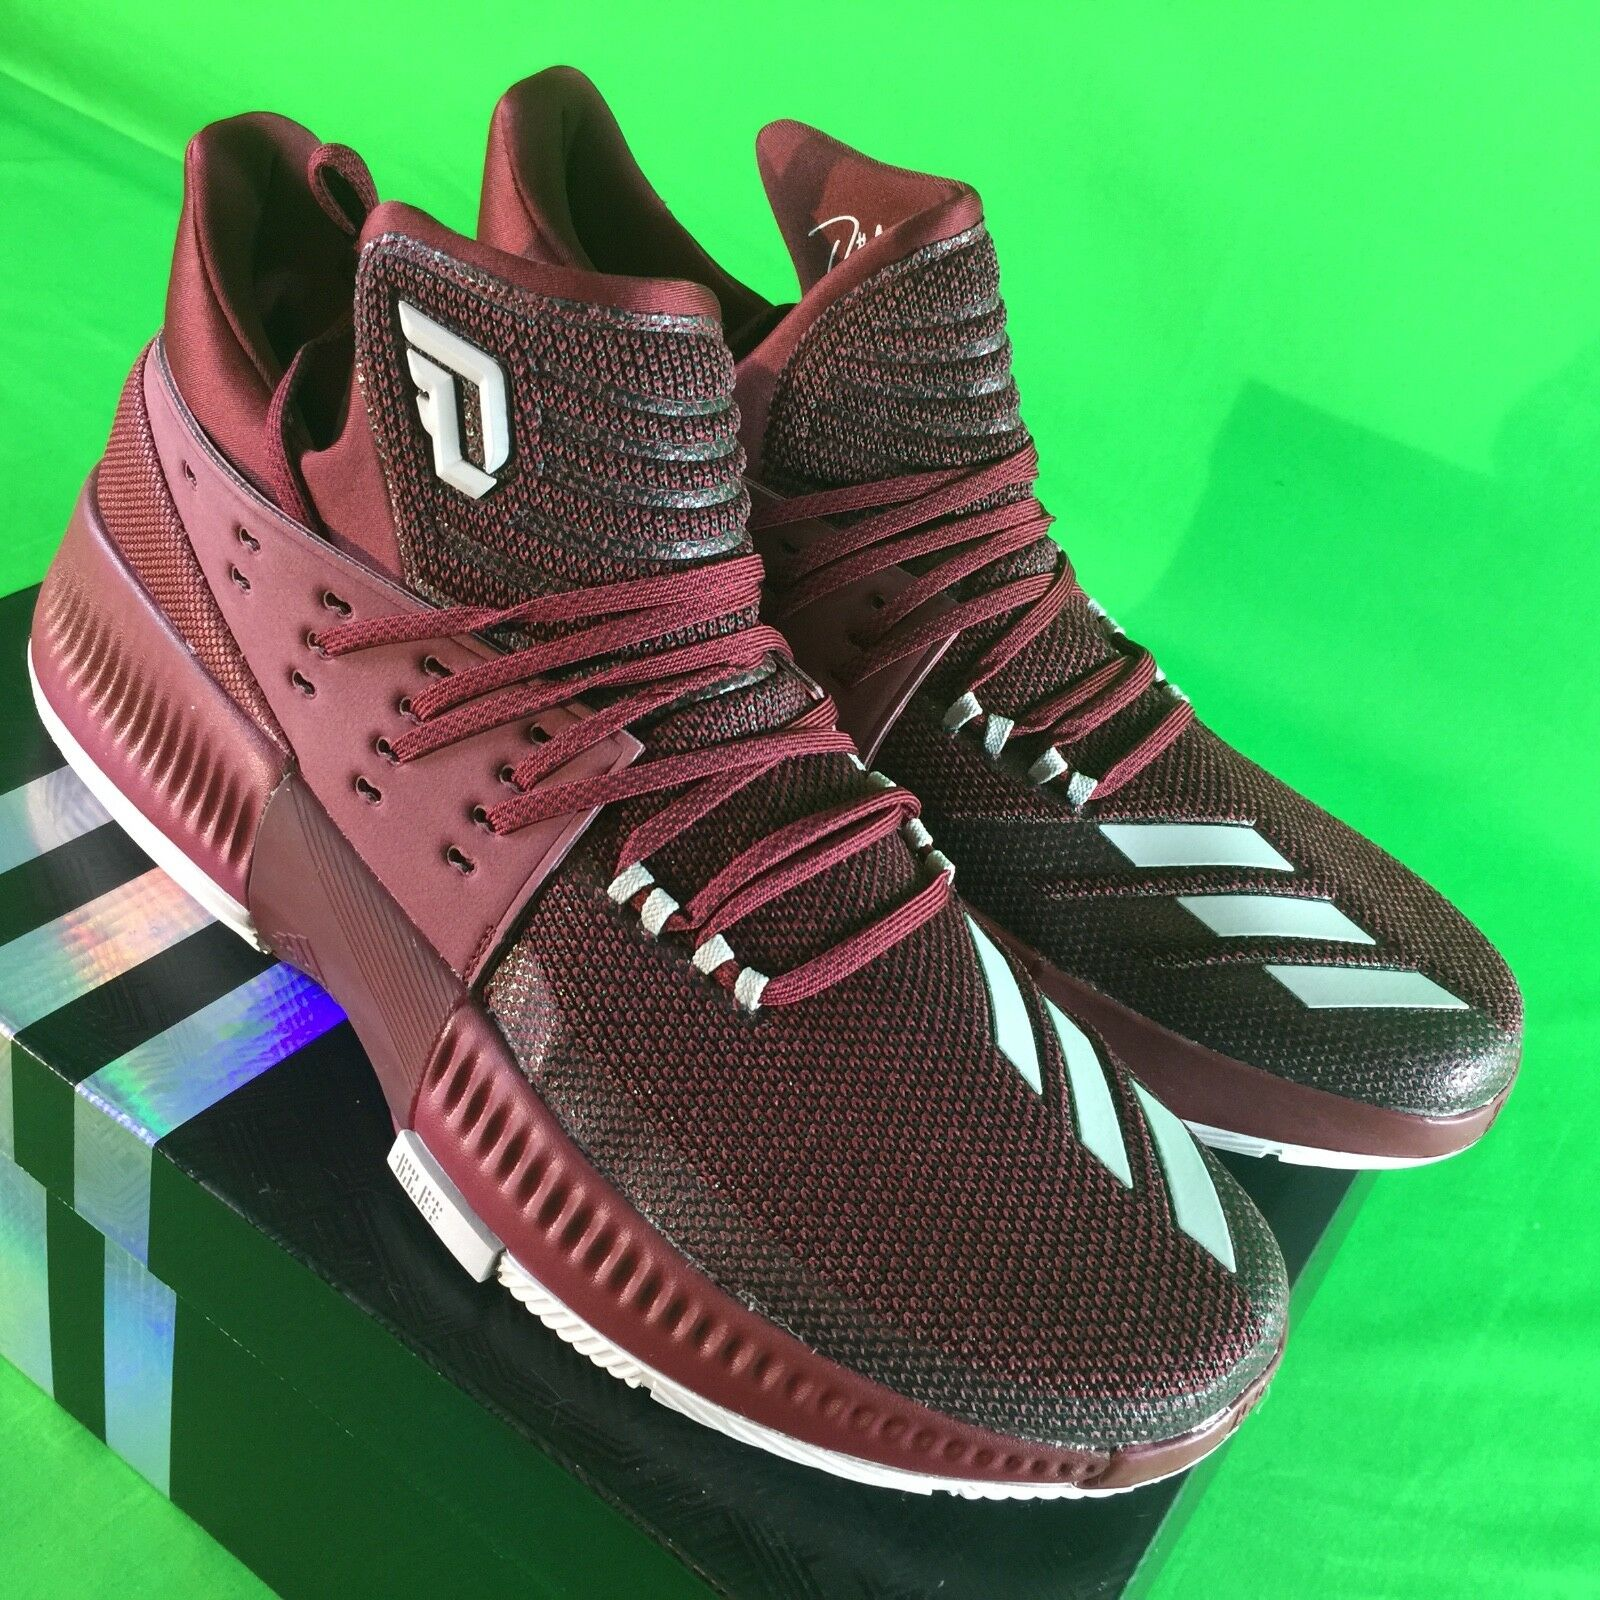 Adidas Dame 3 Maroon Men's Size 14 Basketball shoes NEW in Box BY3195